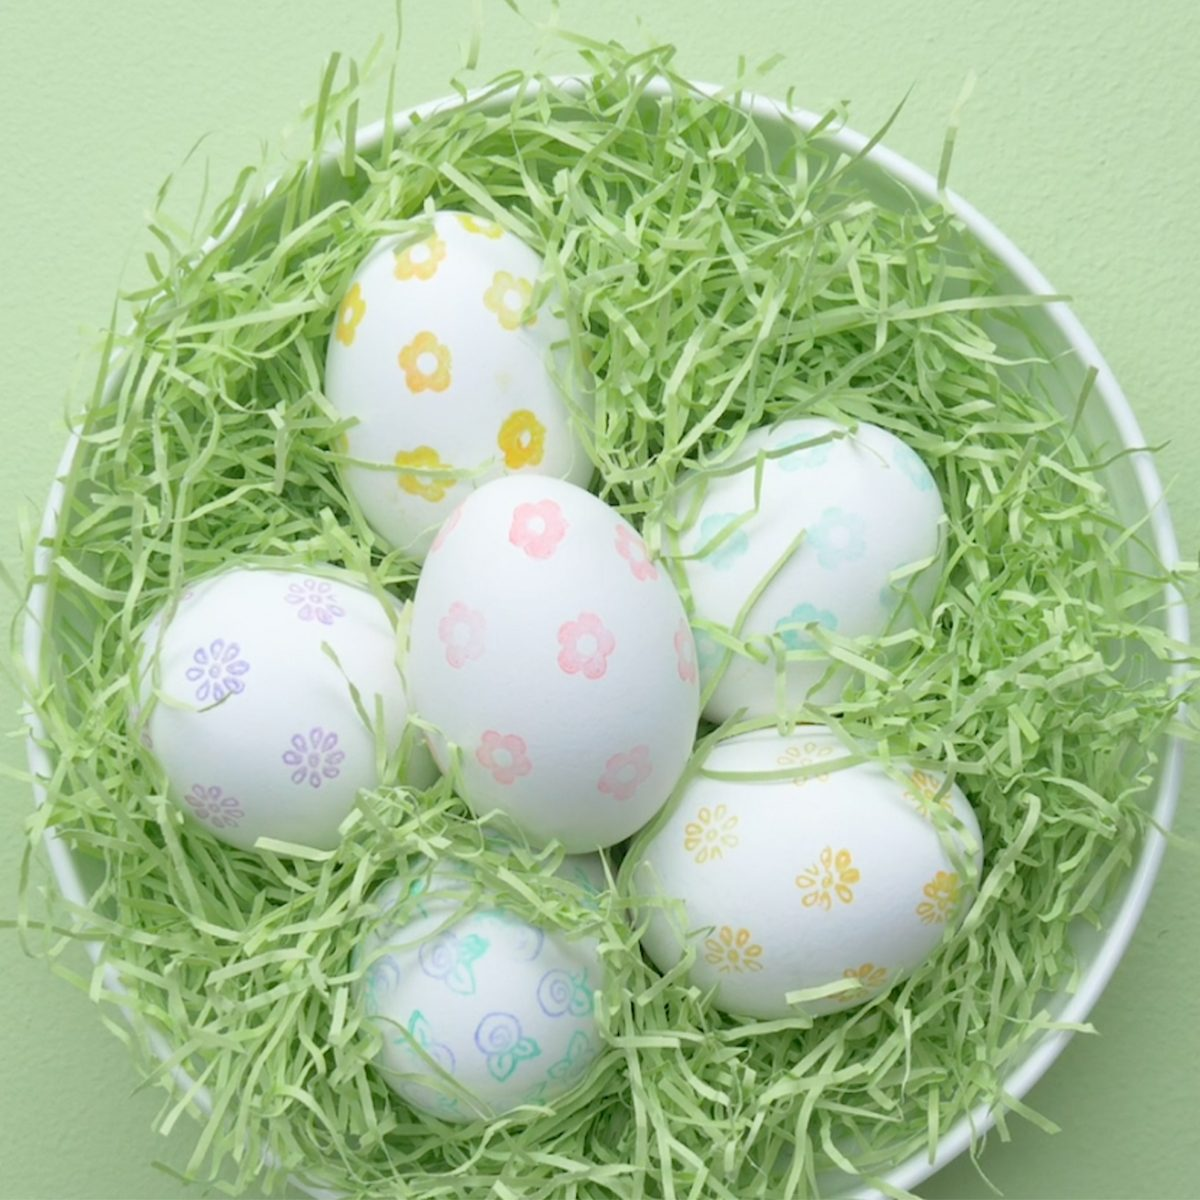 15 Easter Egg Decorating Ideas You Need To Try Taste Of Home